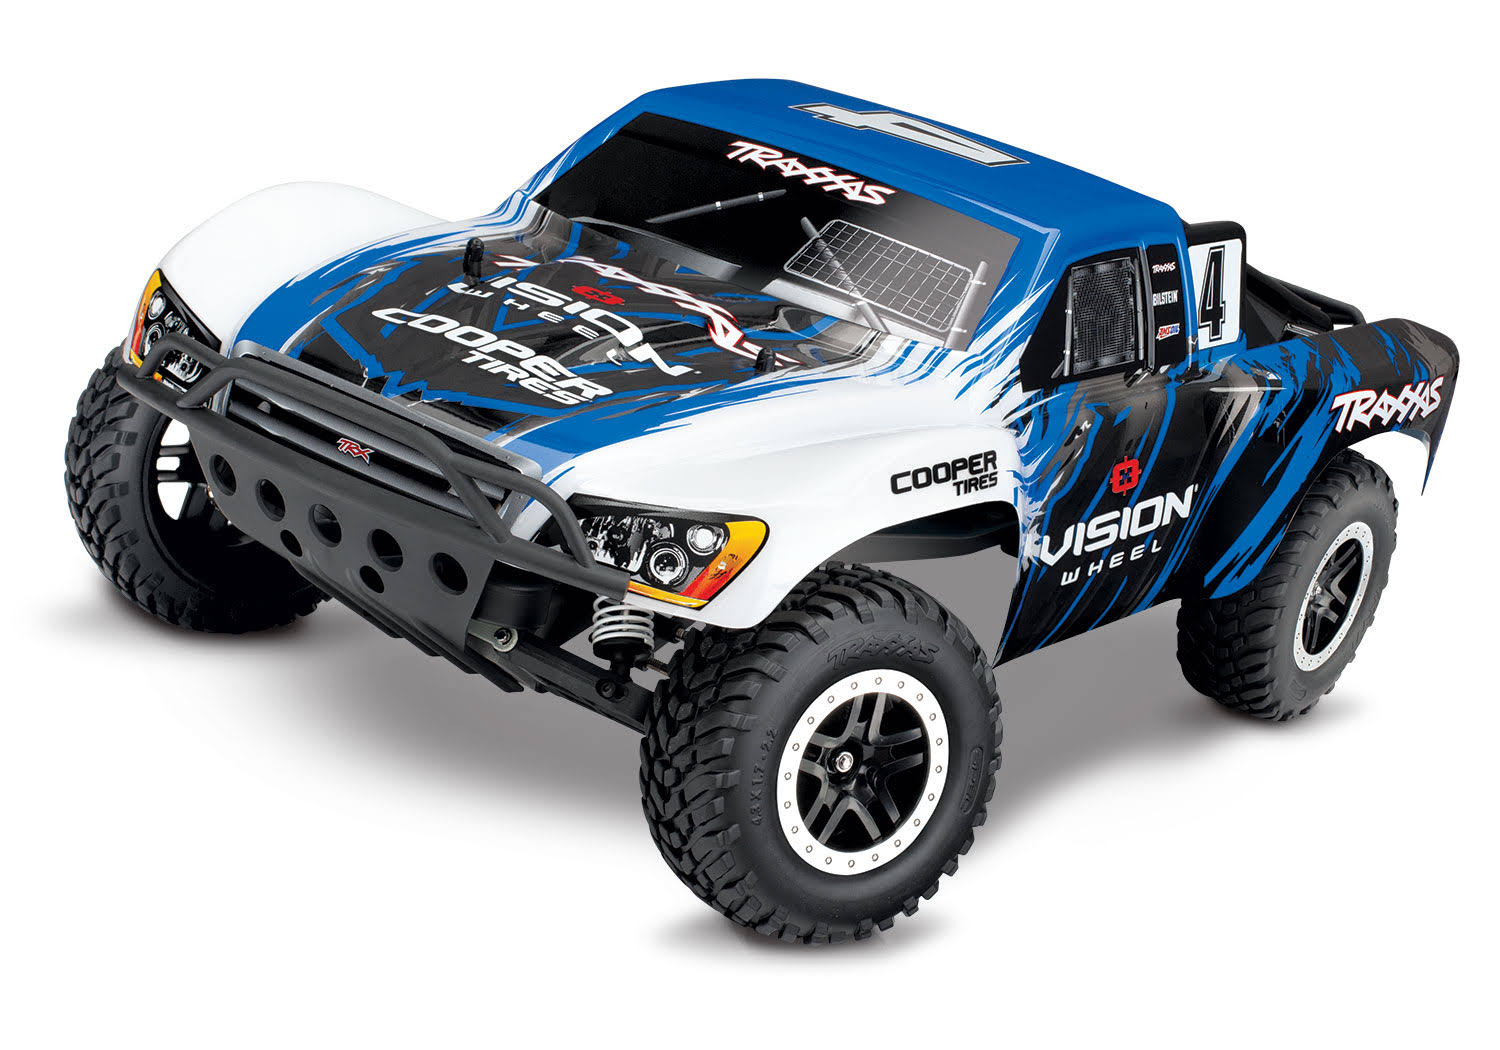 Traxxas Slash Scale 2WD Short Course Racing Truck Toy - Blue and White